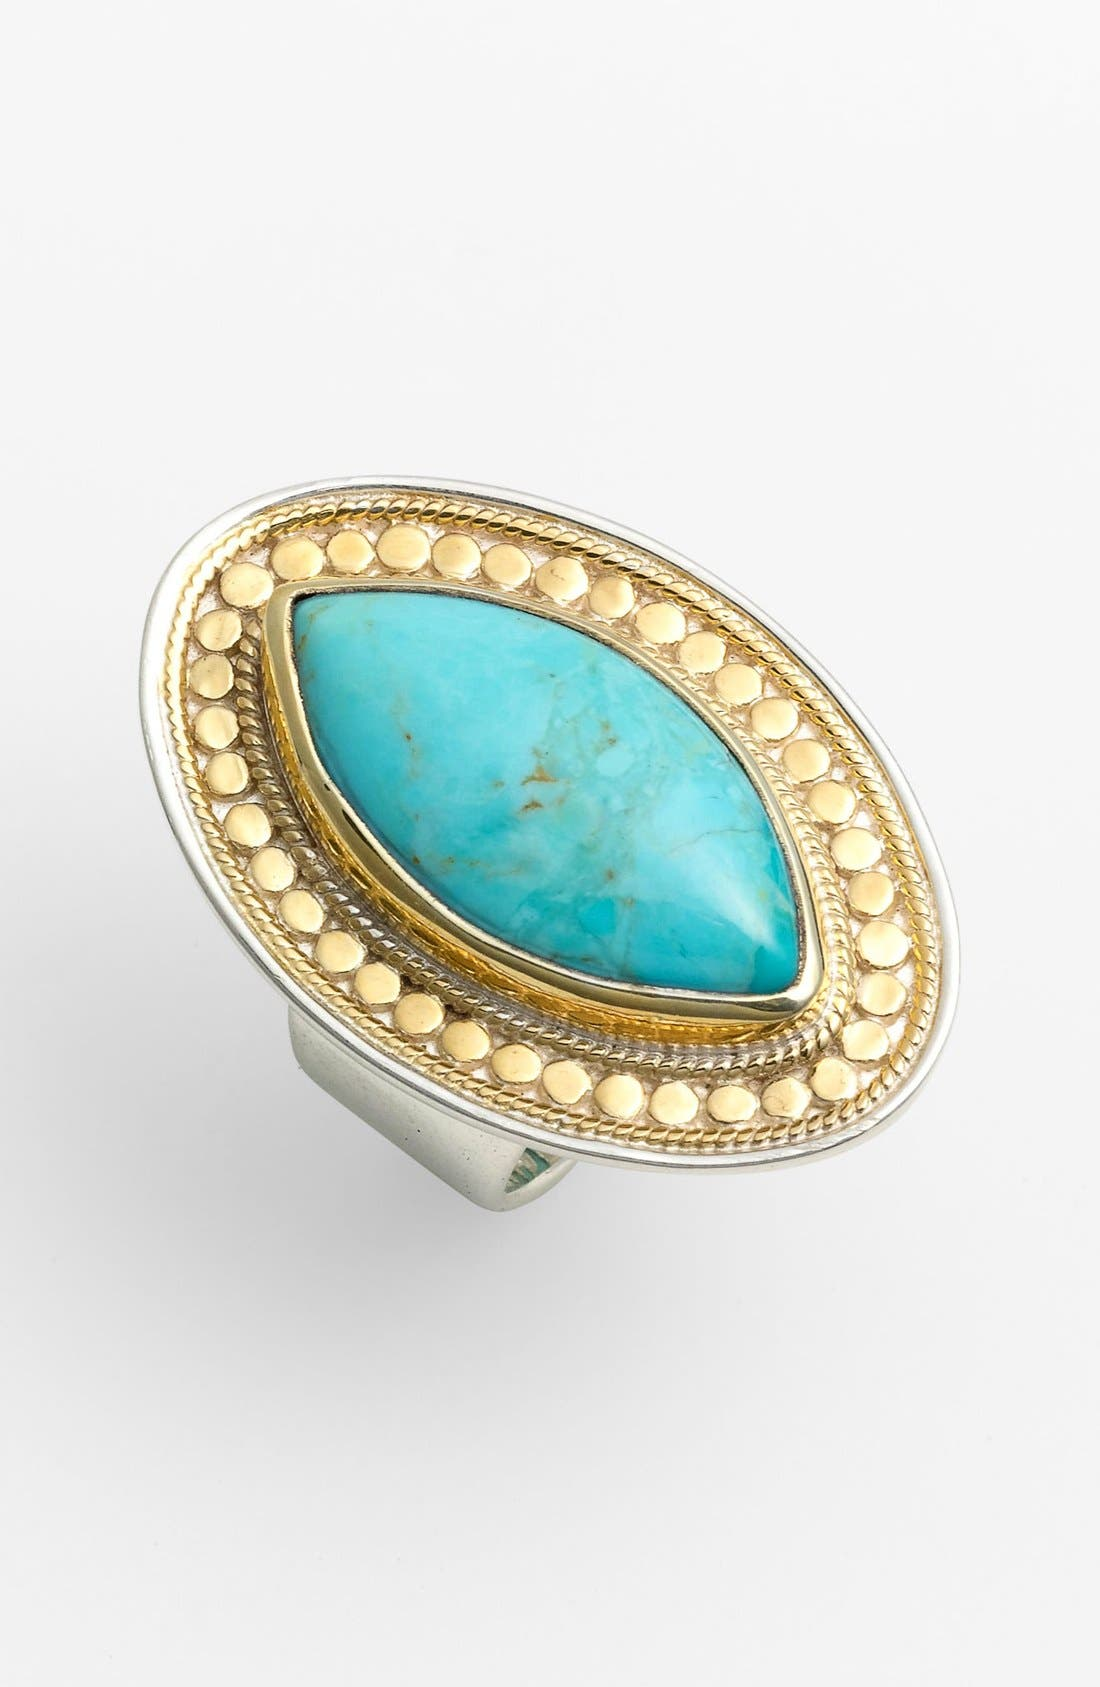 Main Image - Anna Beck 'Gili' Wire Rimmed Stone Ring